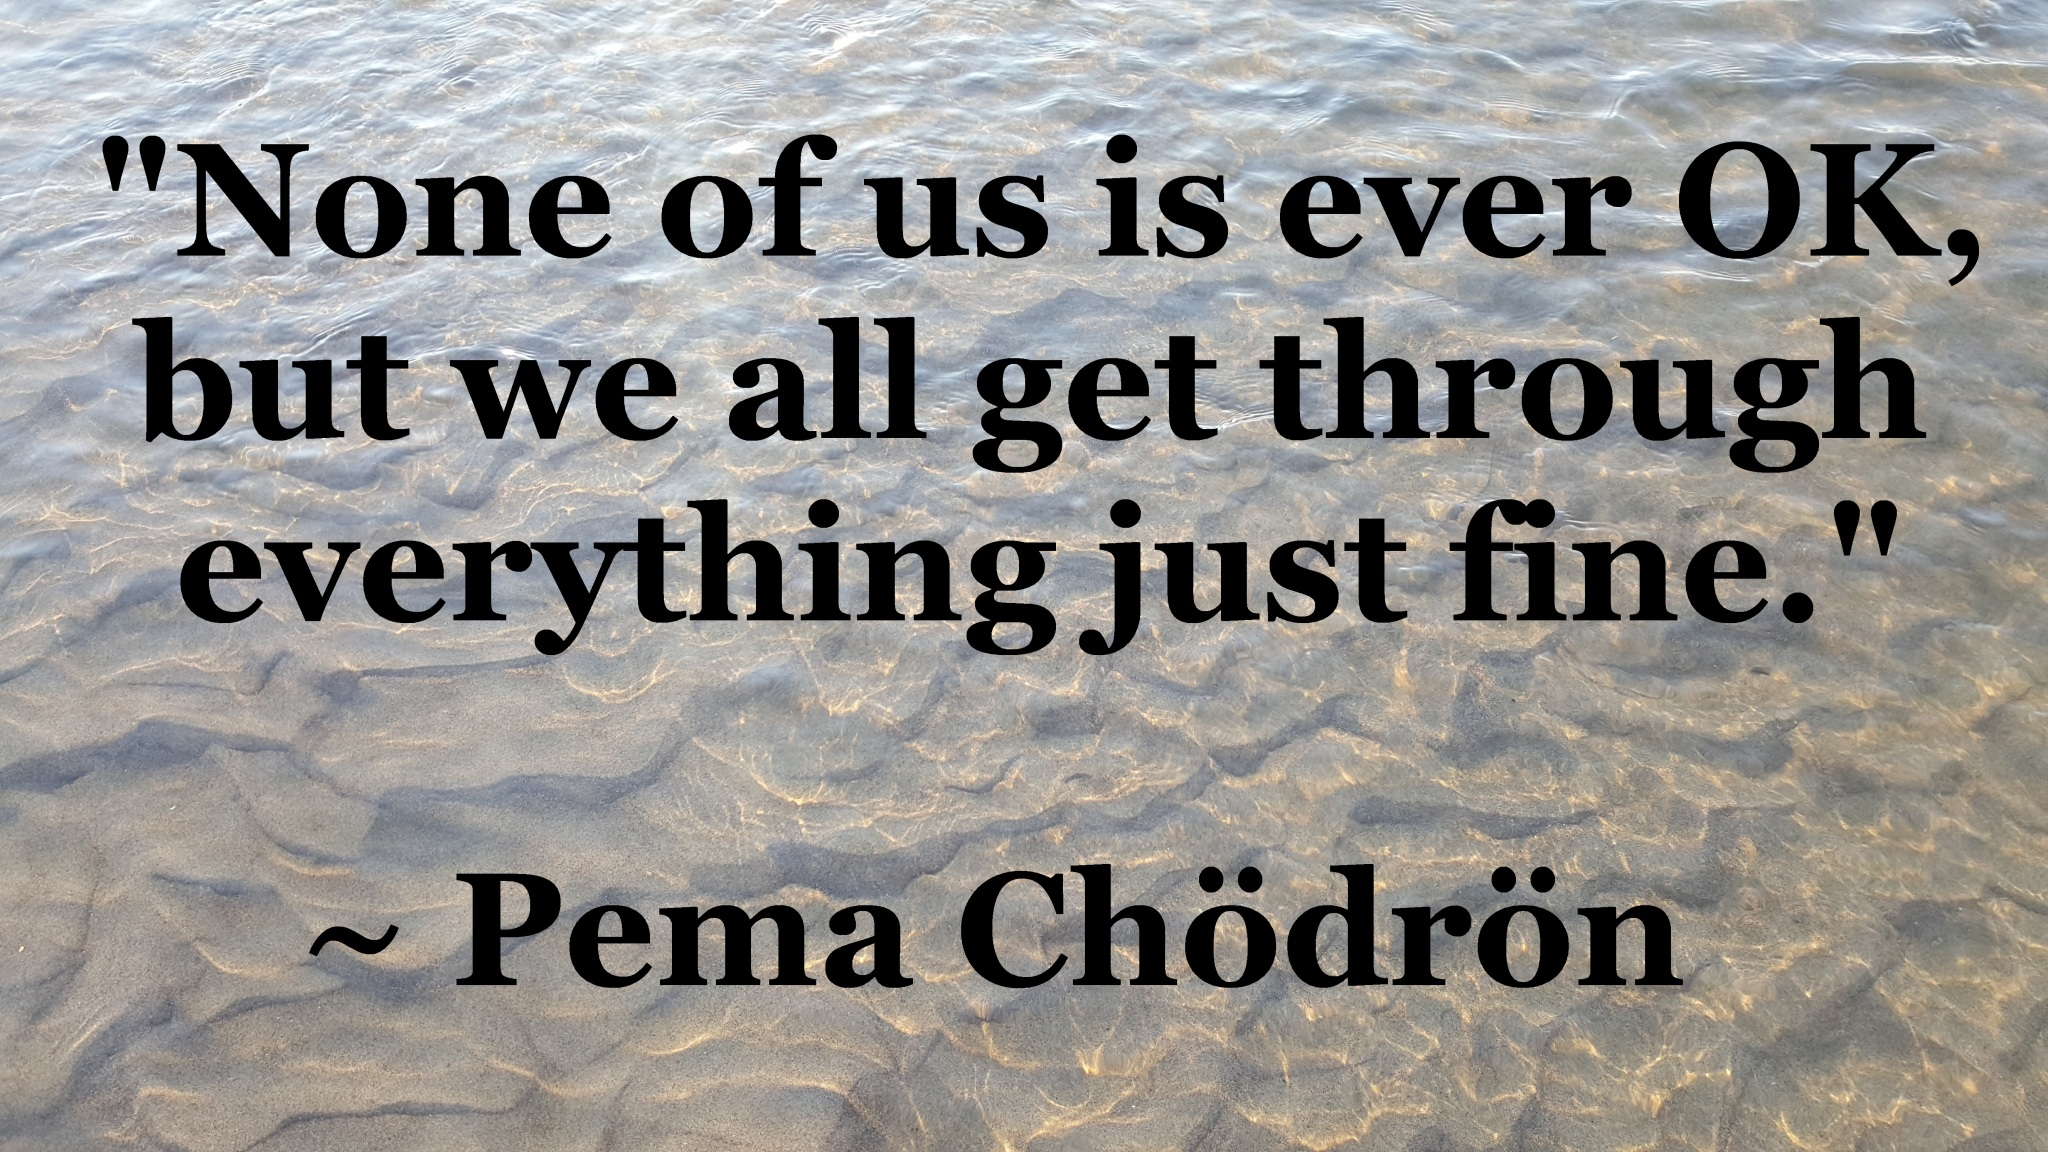 Pema Chodron - no one is ok but we get through just fine